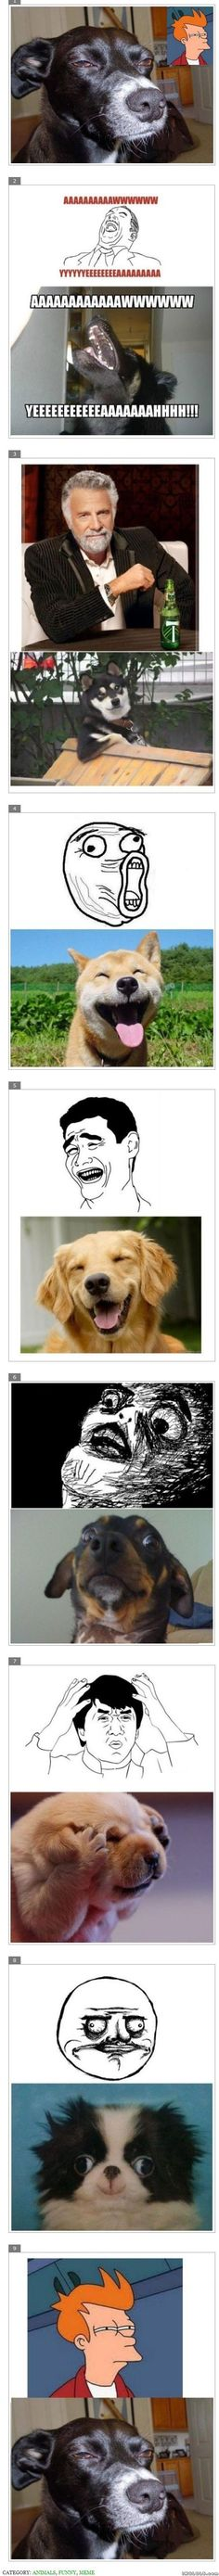 Dogs as Meme Characters - http://www.imglols.com/dogs-as-meme-characters/